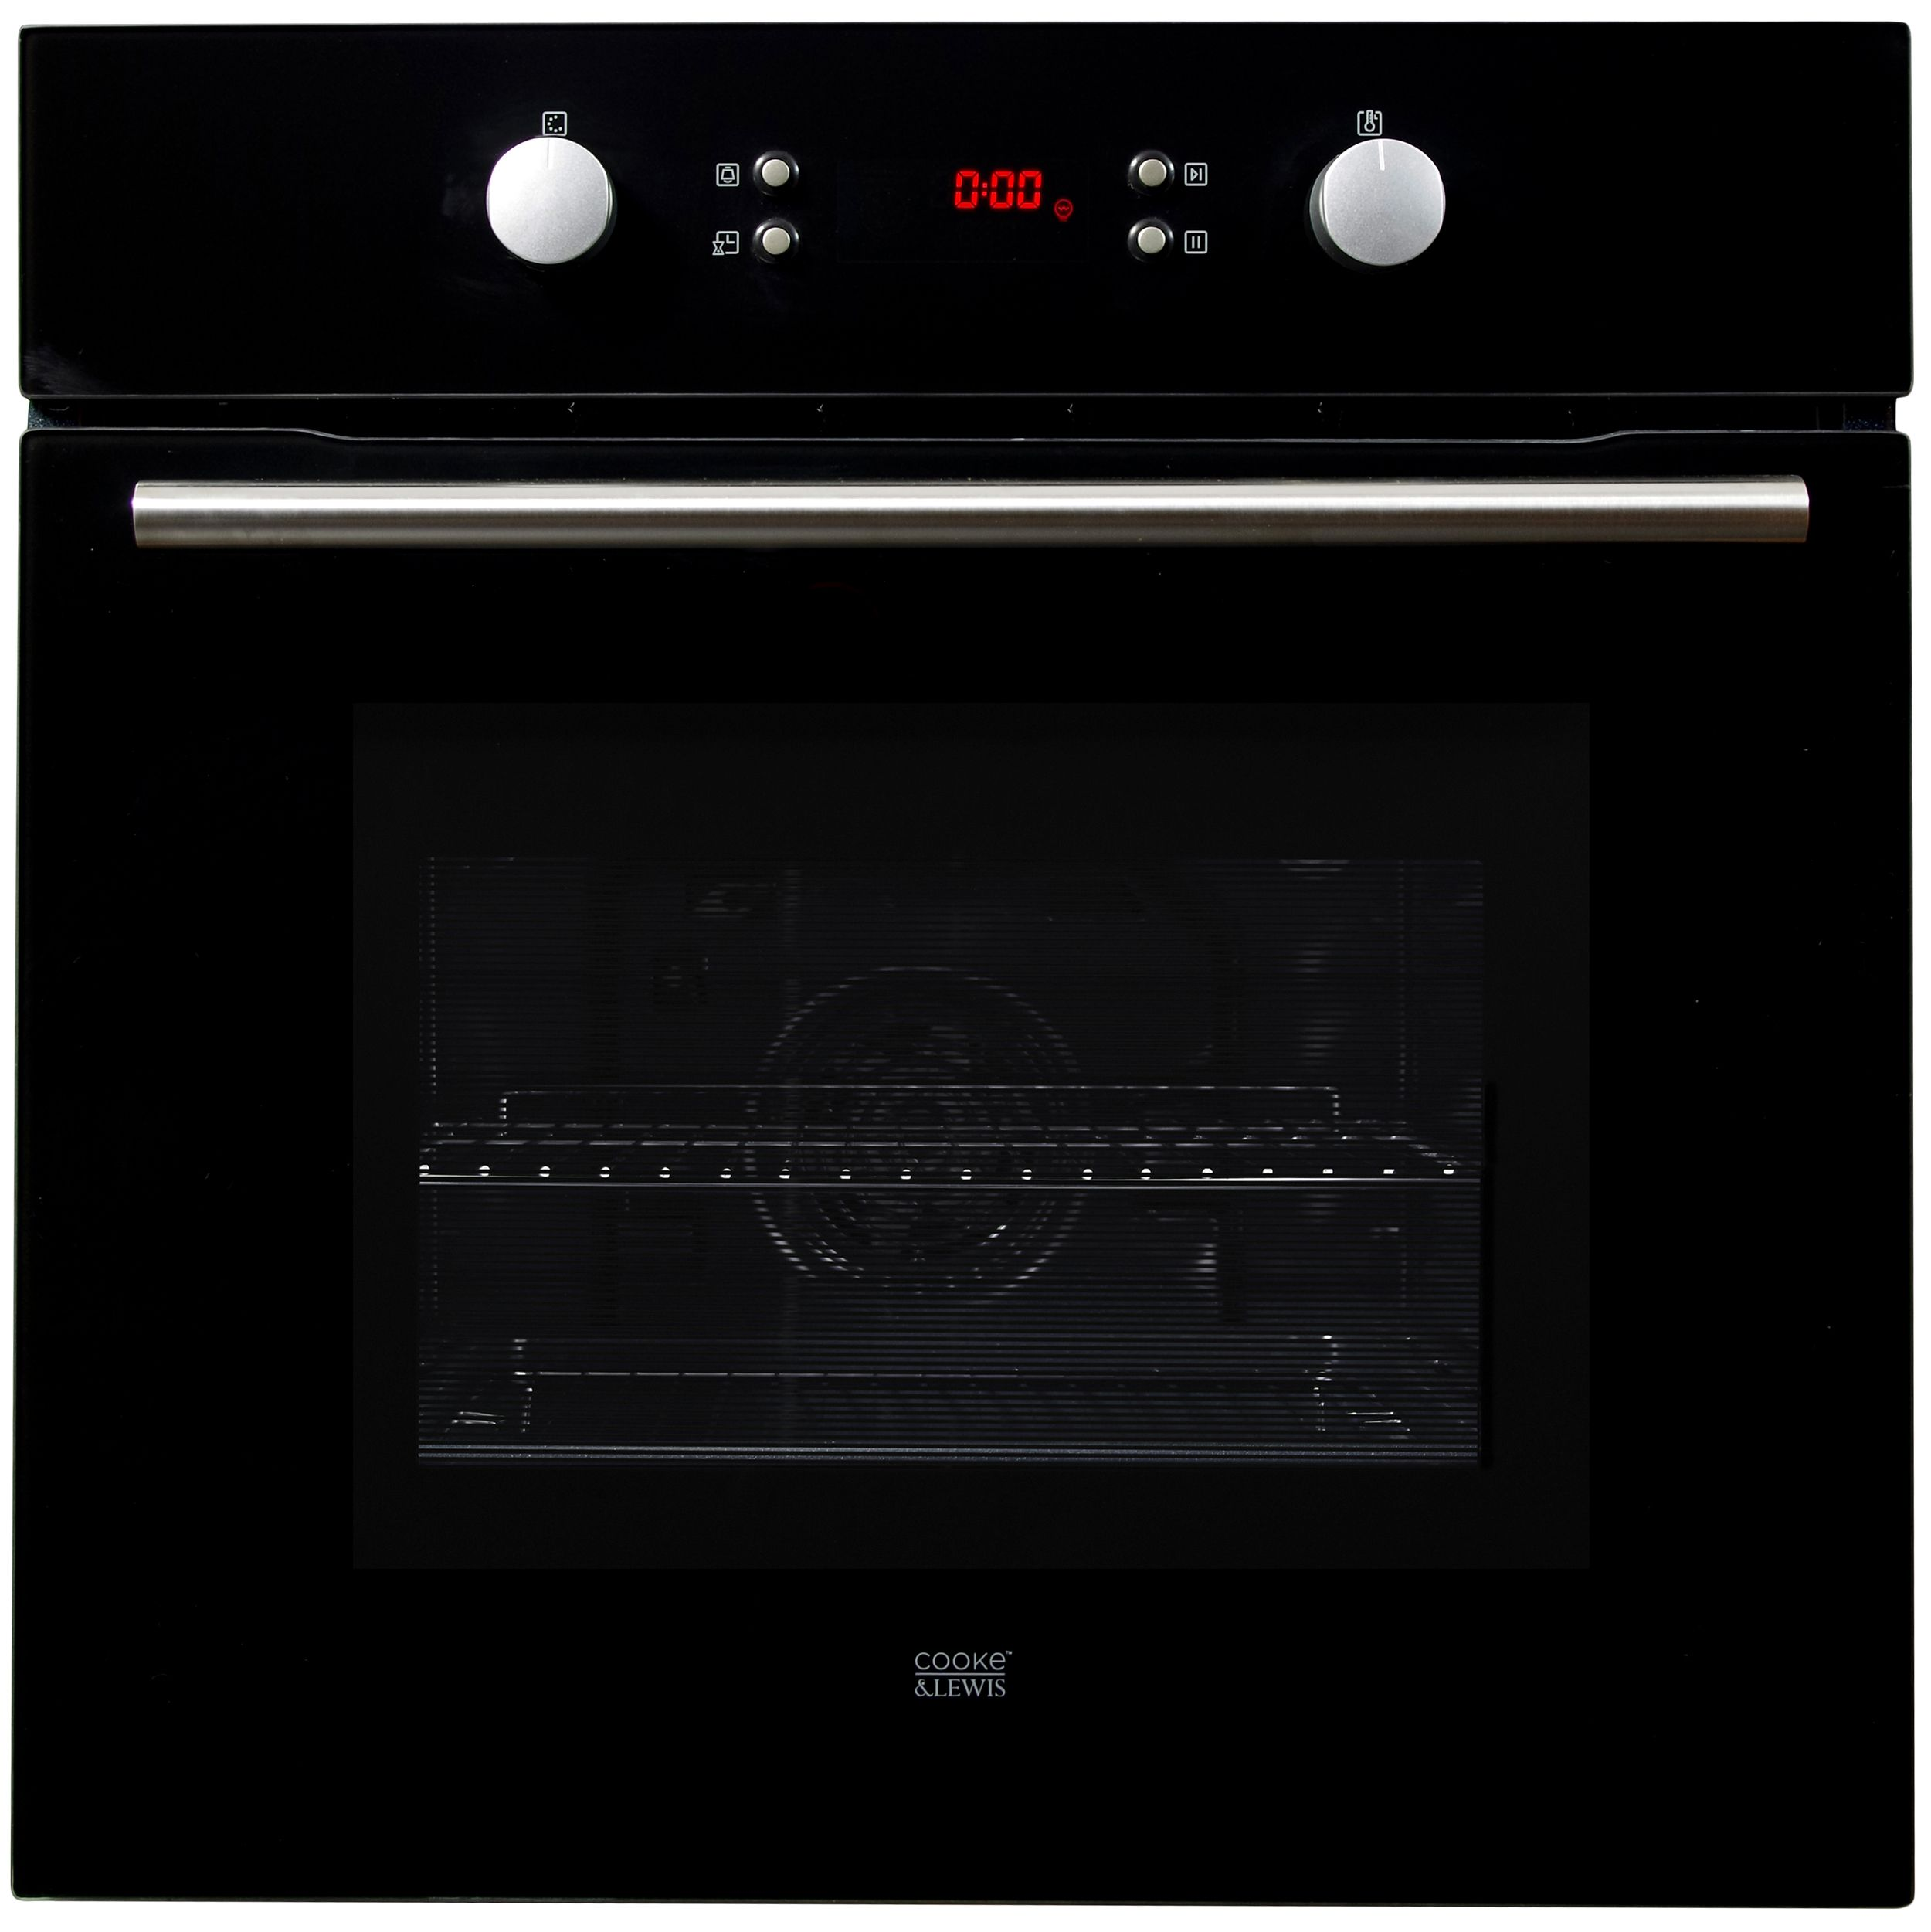 Cooke Lewis Clpyro23 Black Integrated Electric Single Multifunction Oven Departments Diy At B Q